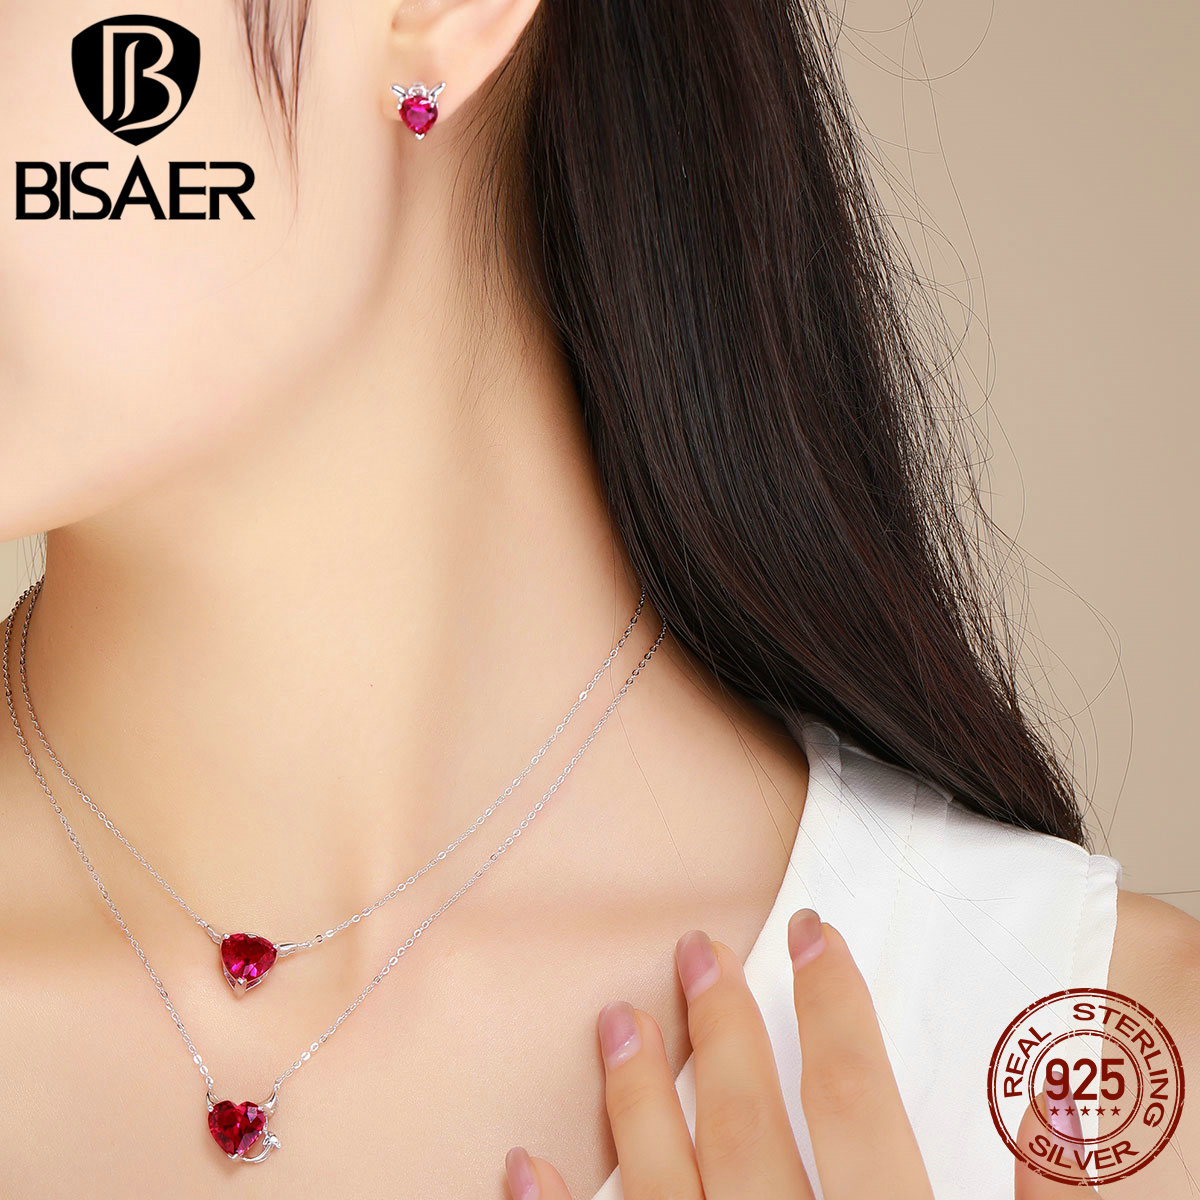 BISAER Silver Jewelry Sets 925 Sterling Silver Evil Angel Red CZ Necklace Earrings Jewelry Set Authentic Silver Jewelry WE067 new authentic 925 sterling silver evil eye luxury women fashion cz blue stone silver necklace